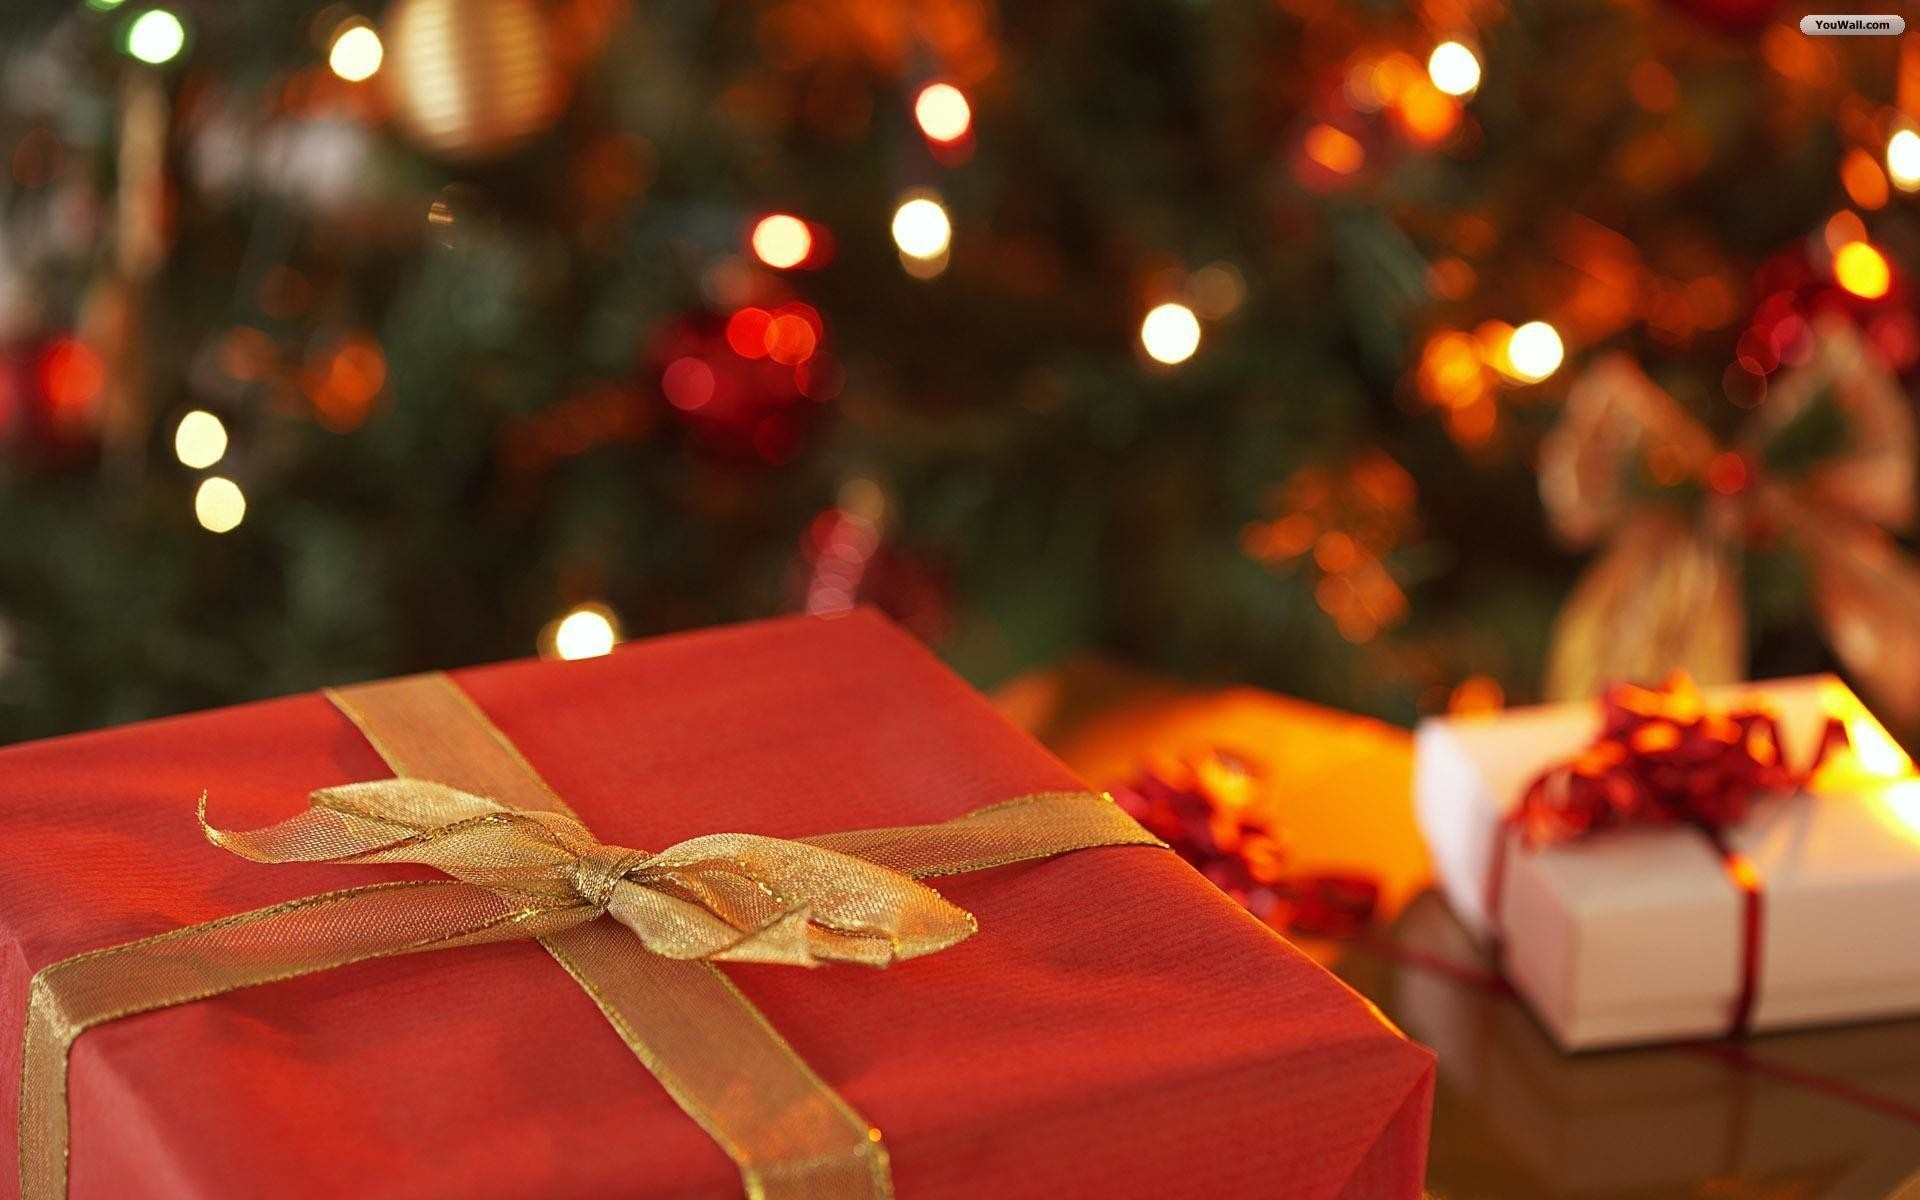 Christmas Present Wallpapers – Wallpaper Cave Christmas Present Wallpaper